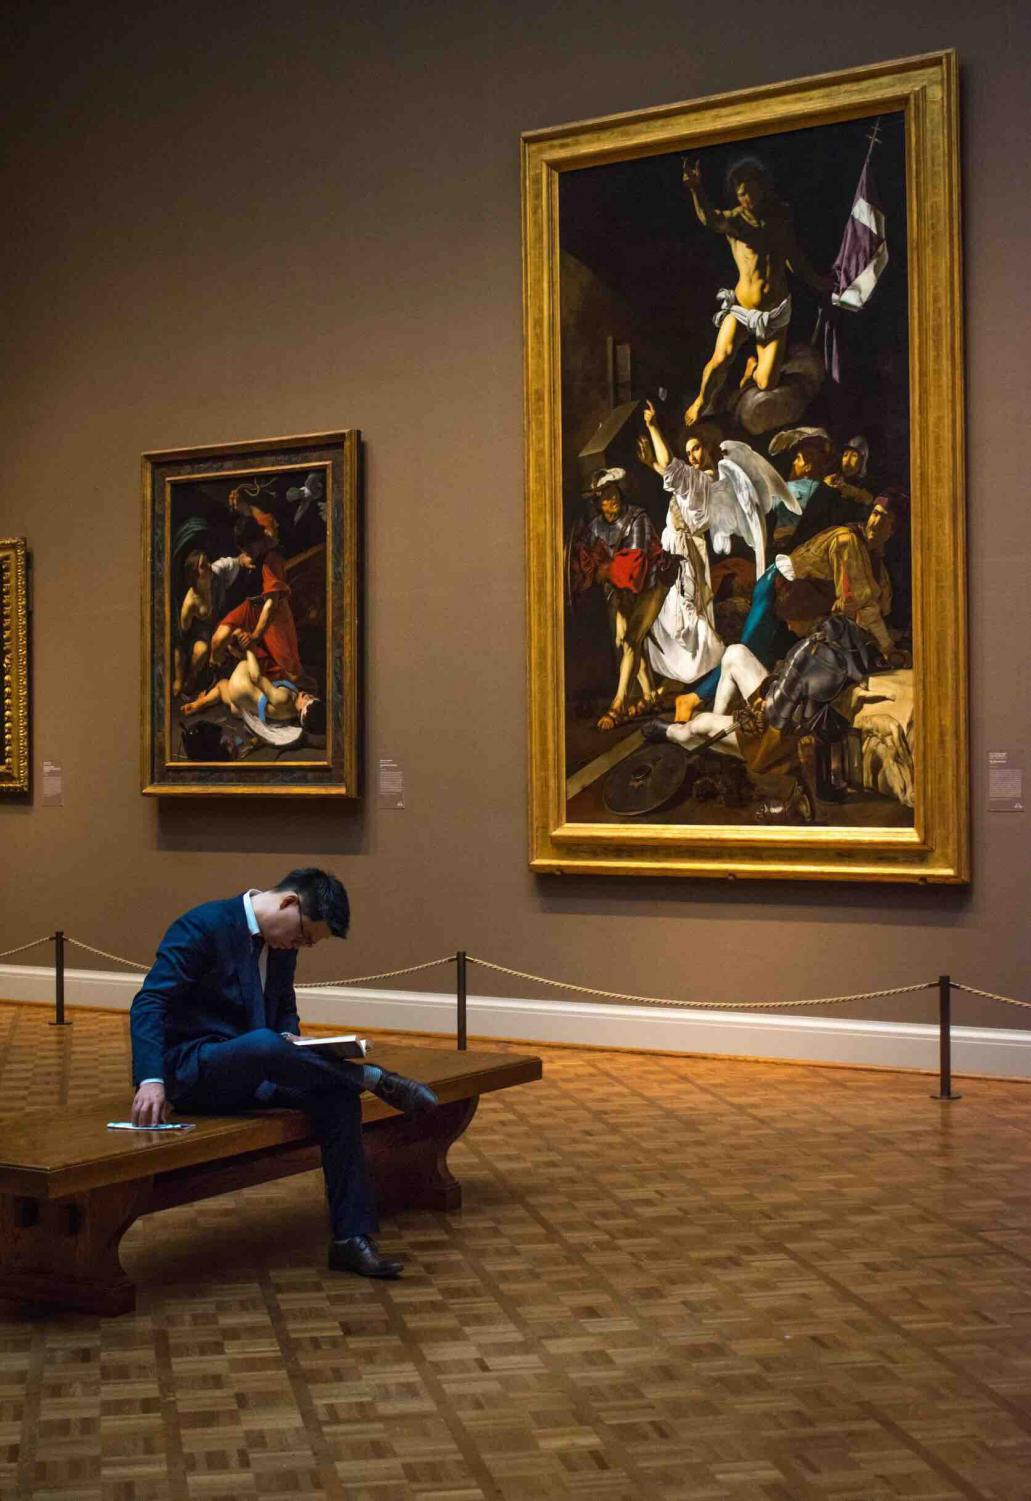 A visitor relaxes in the Art Institute of Chicago.